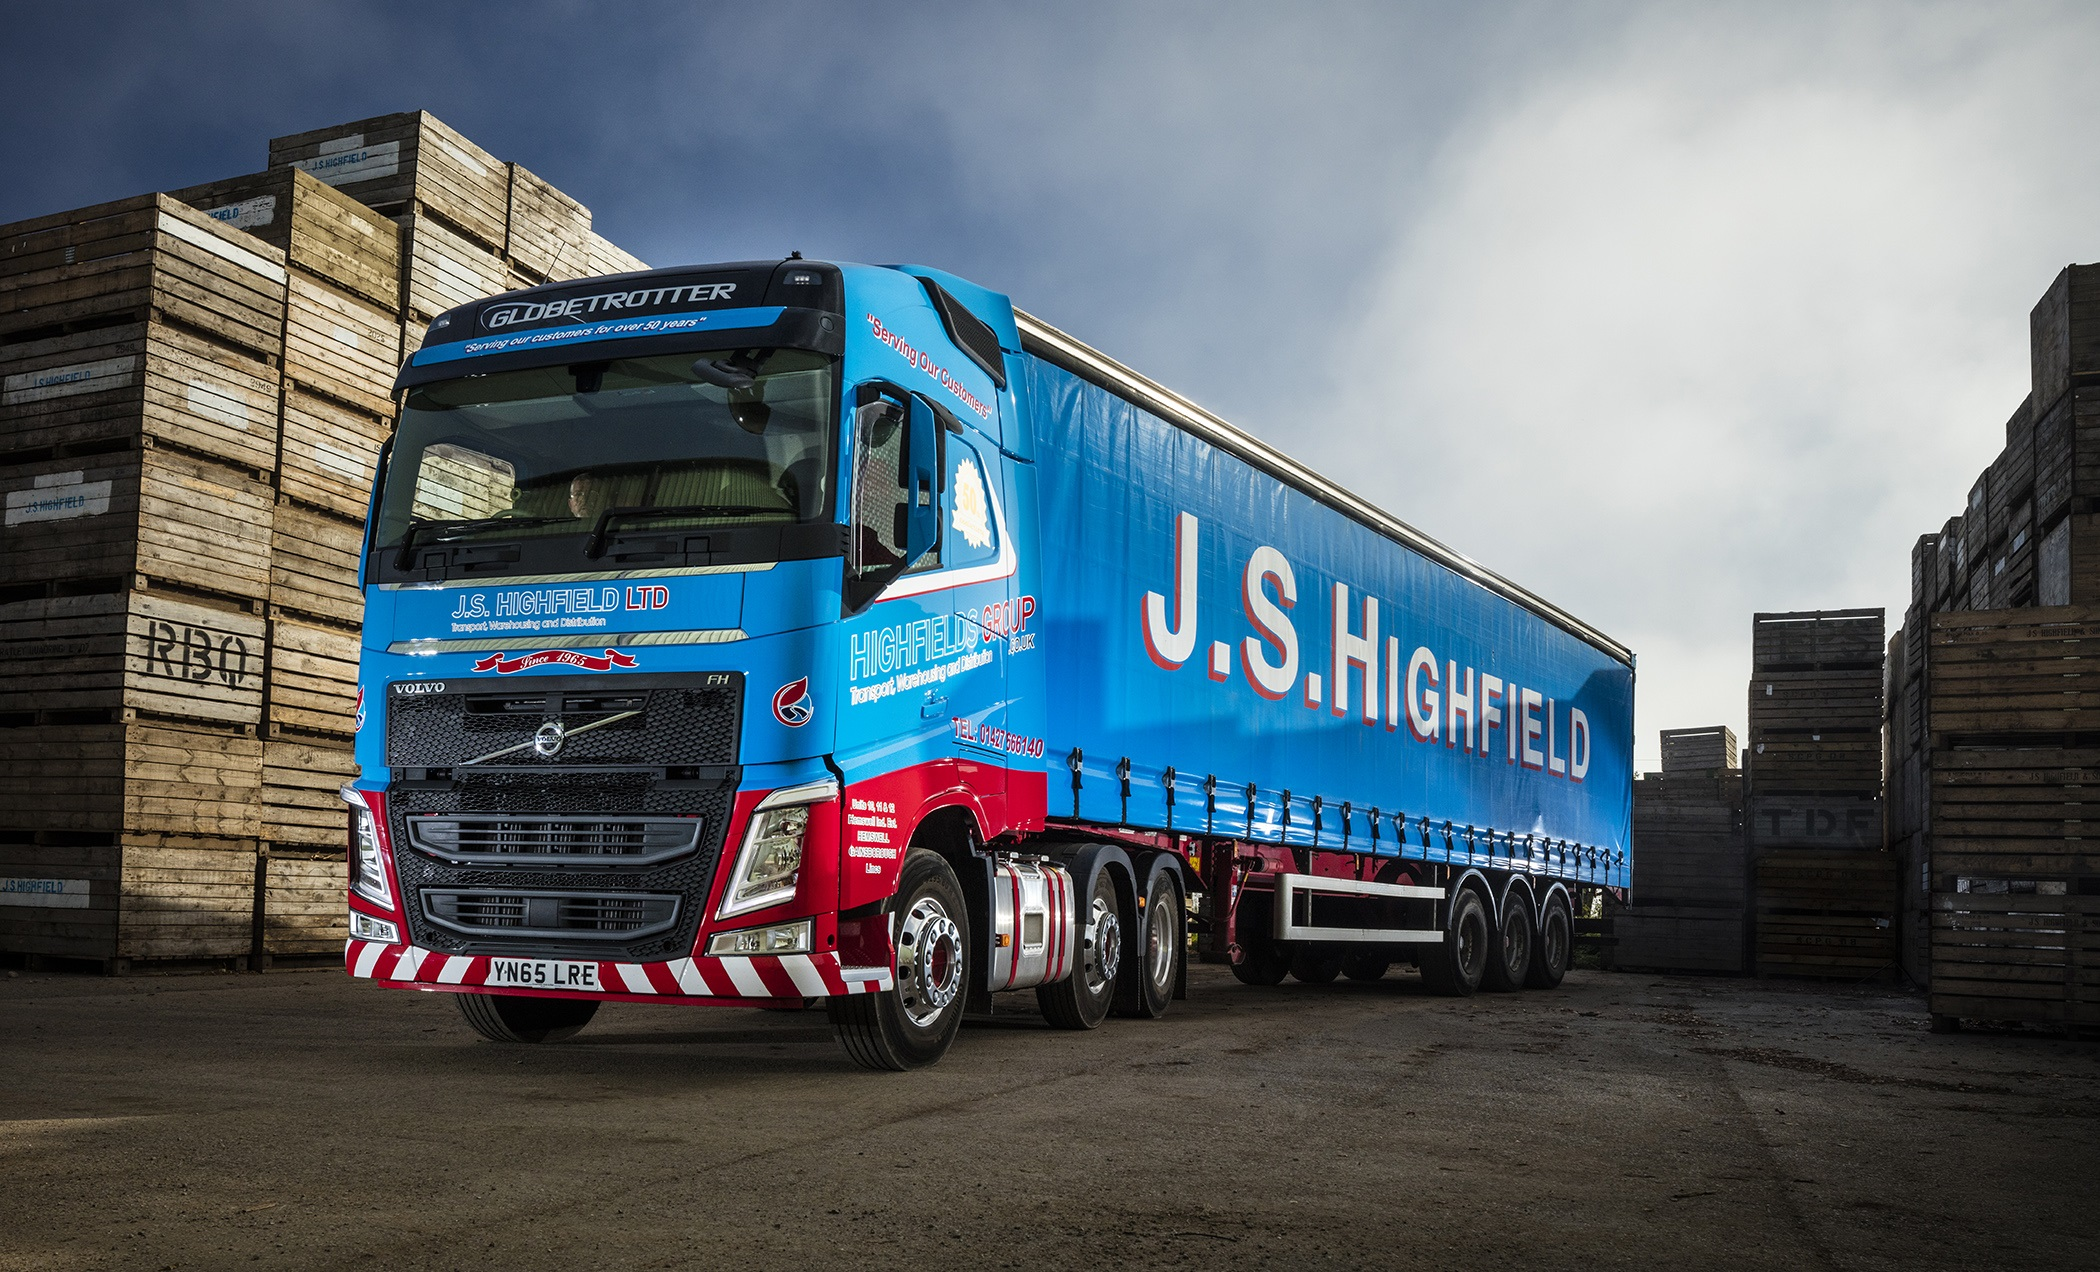 Tough FH 'Clears the Ground' down on the farm for J. S. Highfield | Fleet UK Haulier